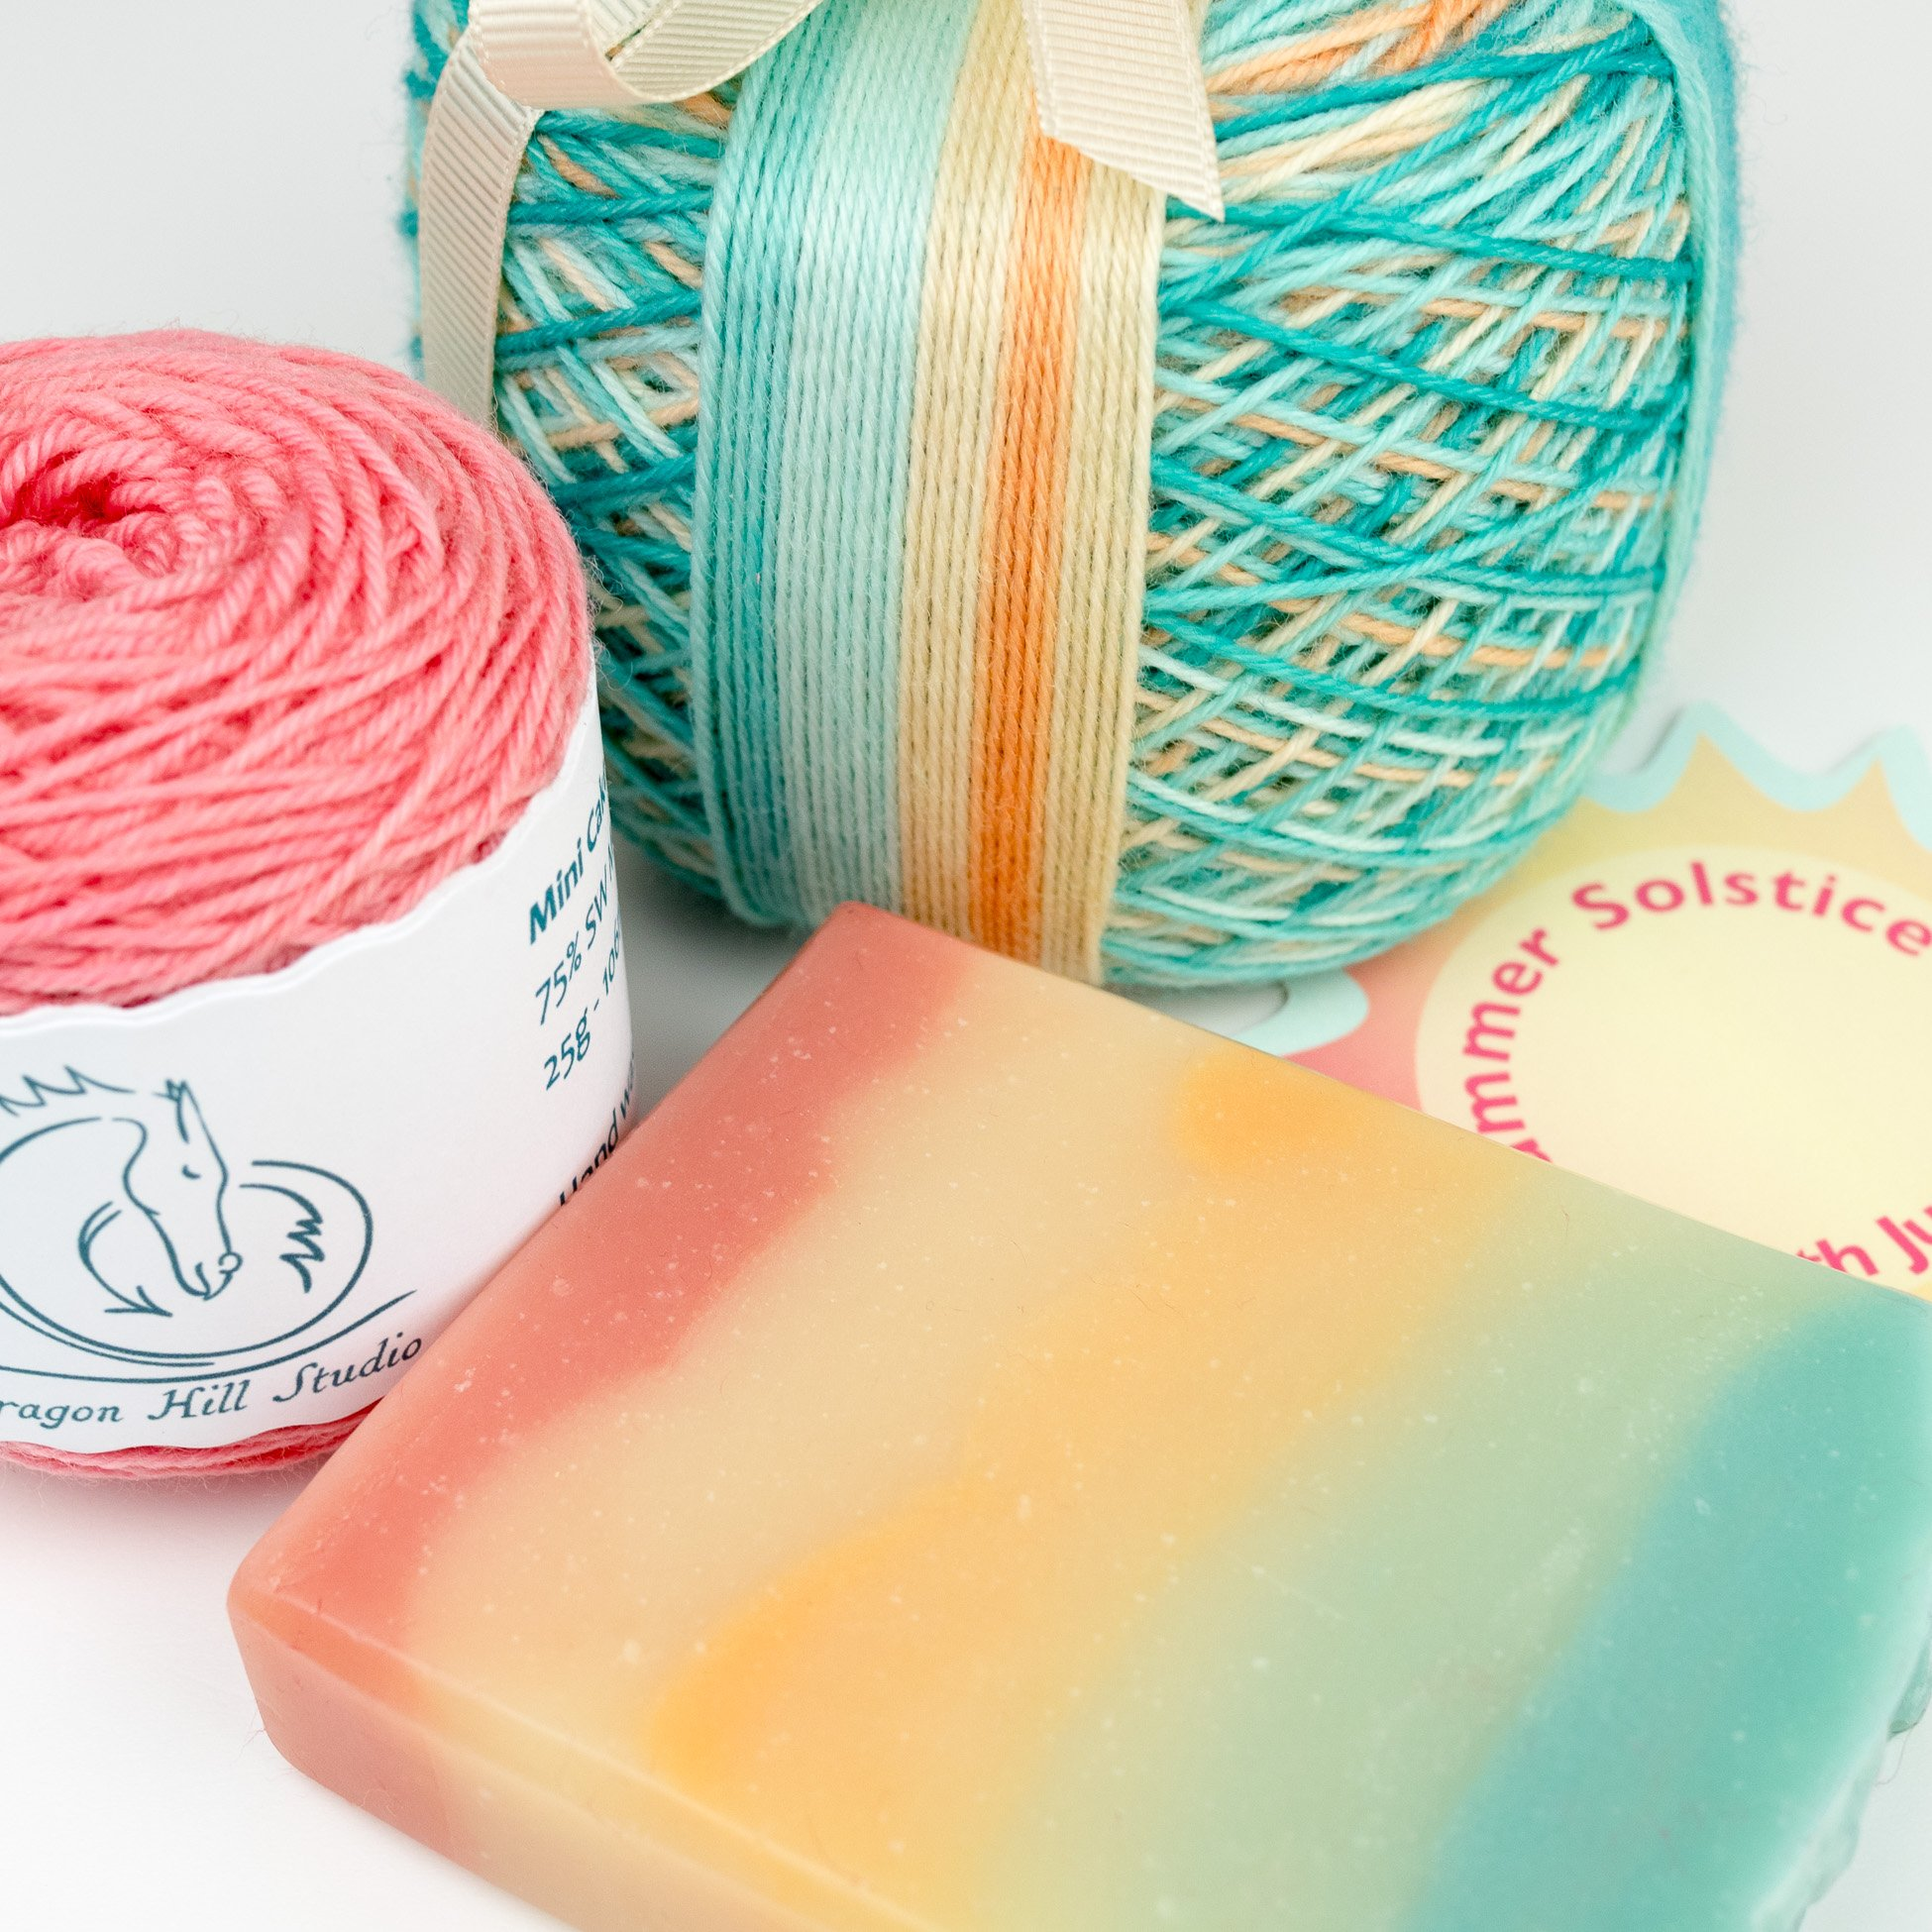 Self striping sock yarn in shades of pale aqua, orange and pink